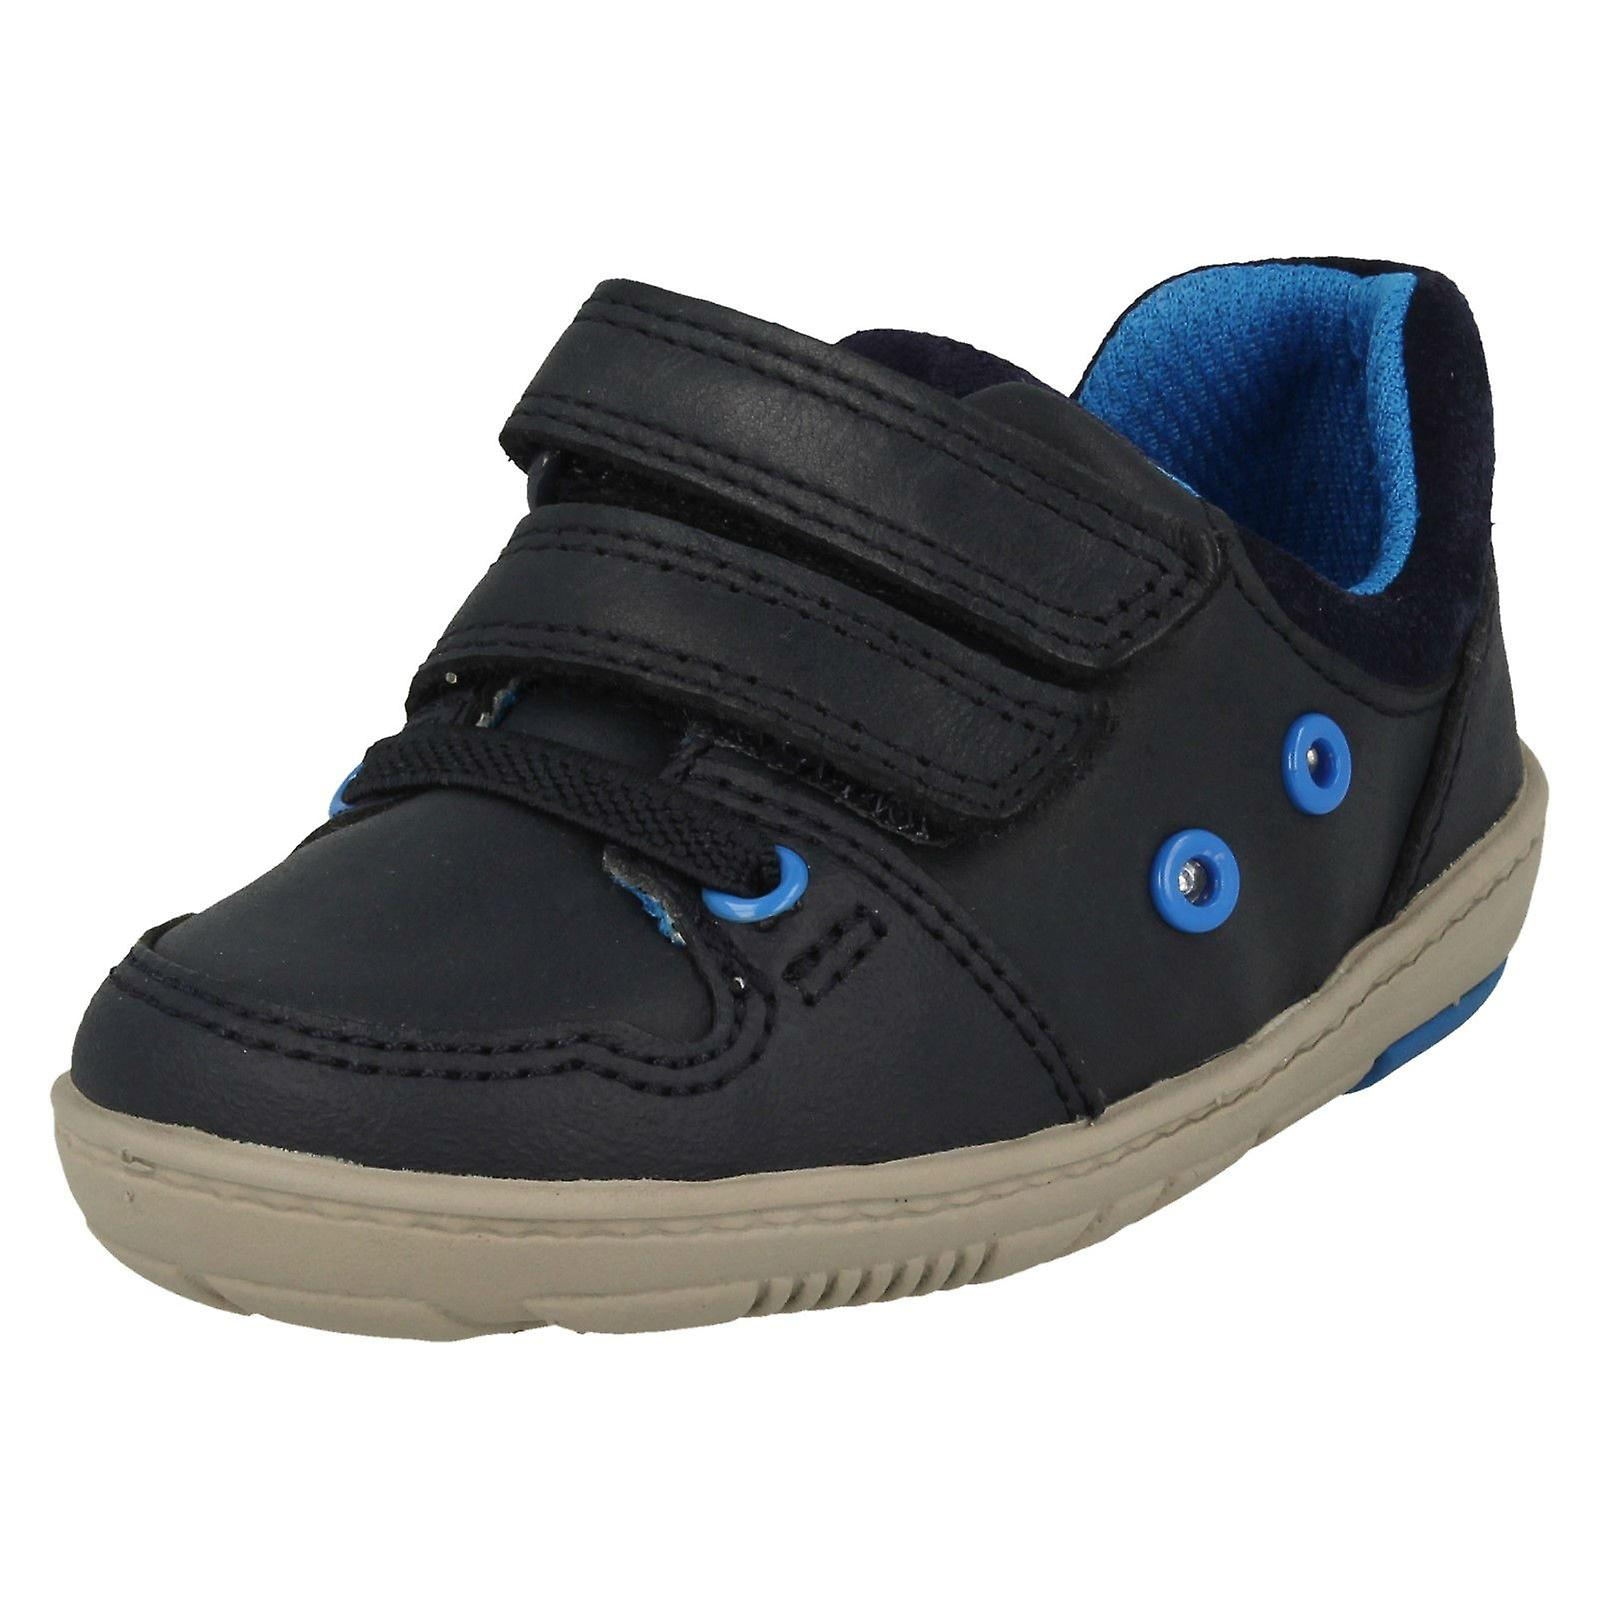 Boys Lights Clarks Casual Shoes With Lights Boys Tolby Boo-Matching In Color-Man's/Woman's f4dd35